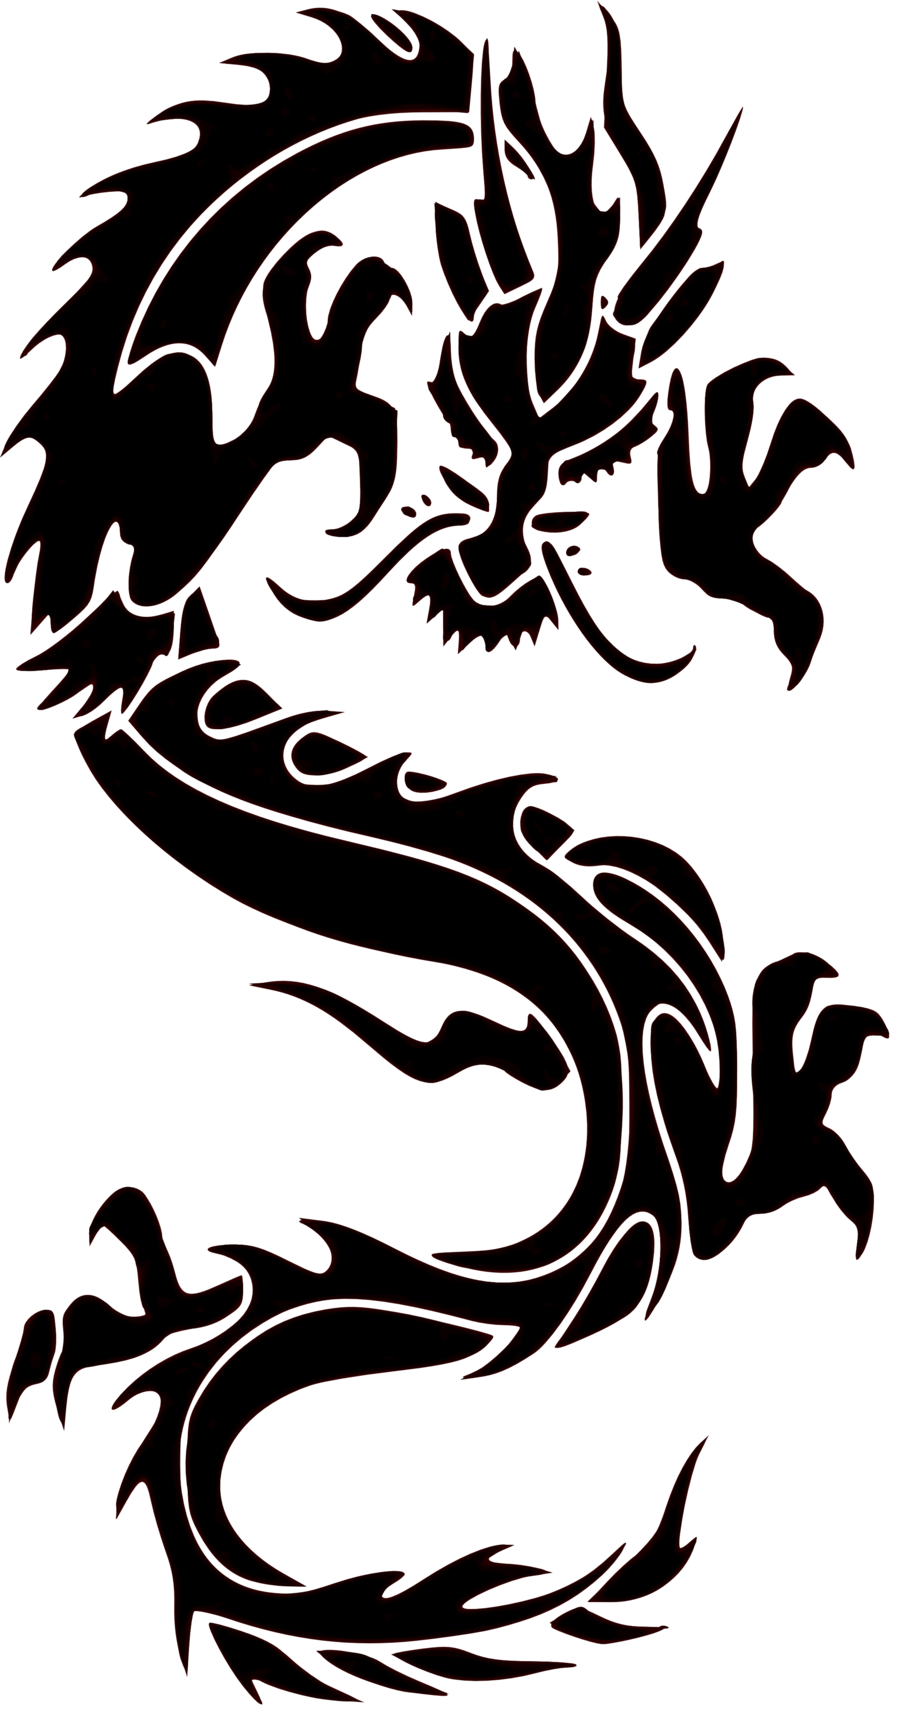 Tribal dragon car camper van truck window stickers 4 clipart wall decal sticker